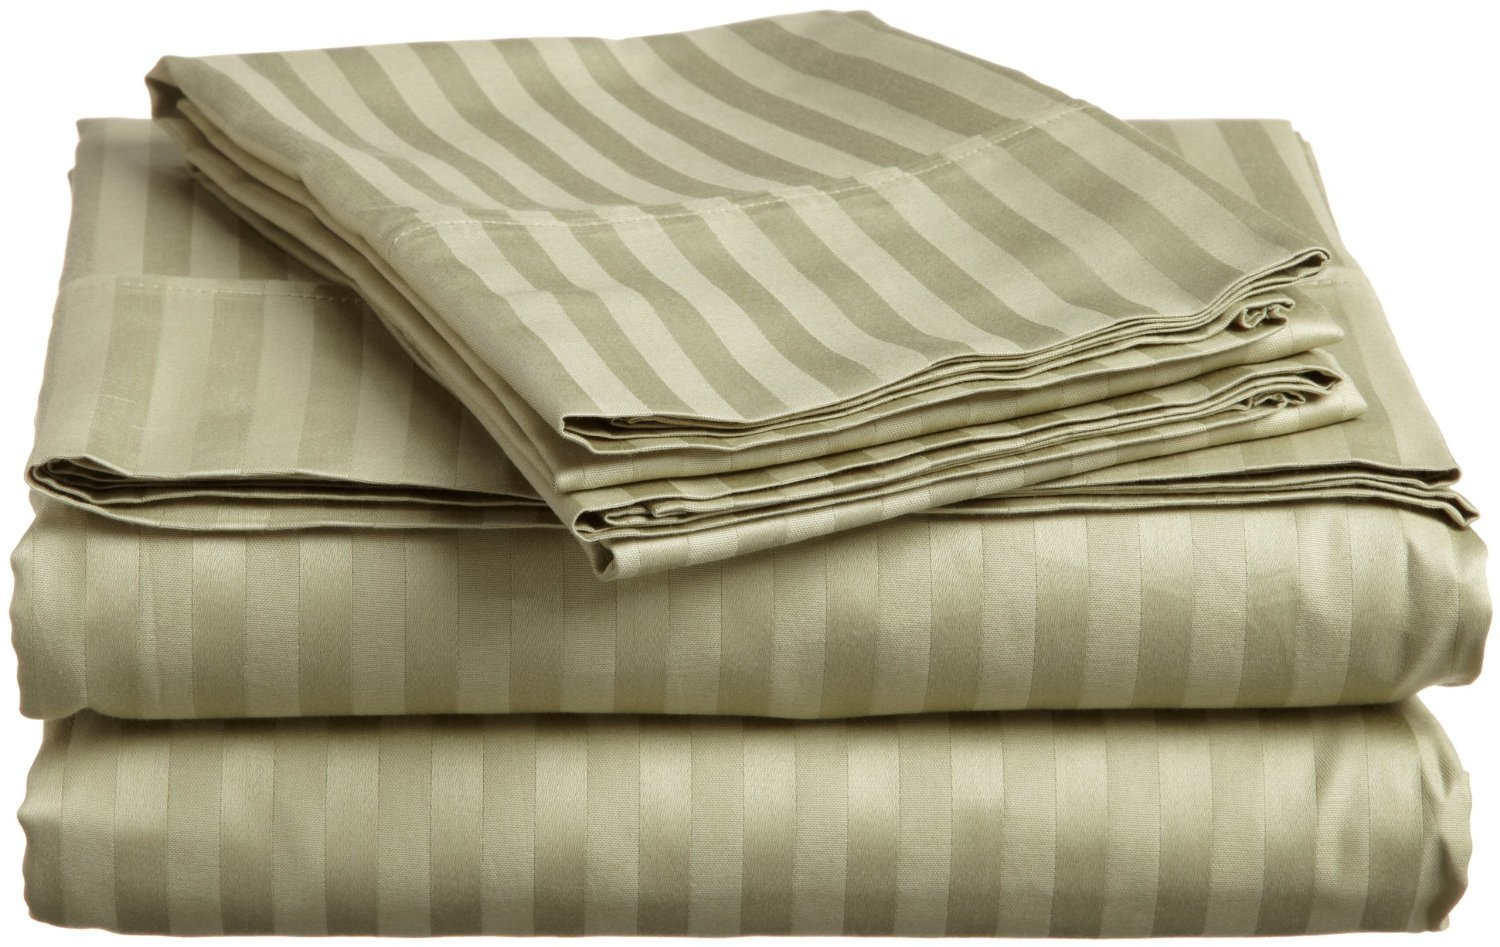 ELAINE KAREN STRIPED 4PC KING Sheet Set SAGE GREEN COMINHKR040158